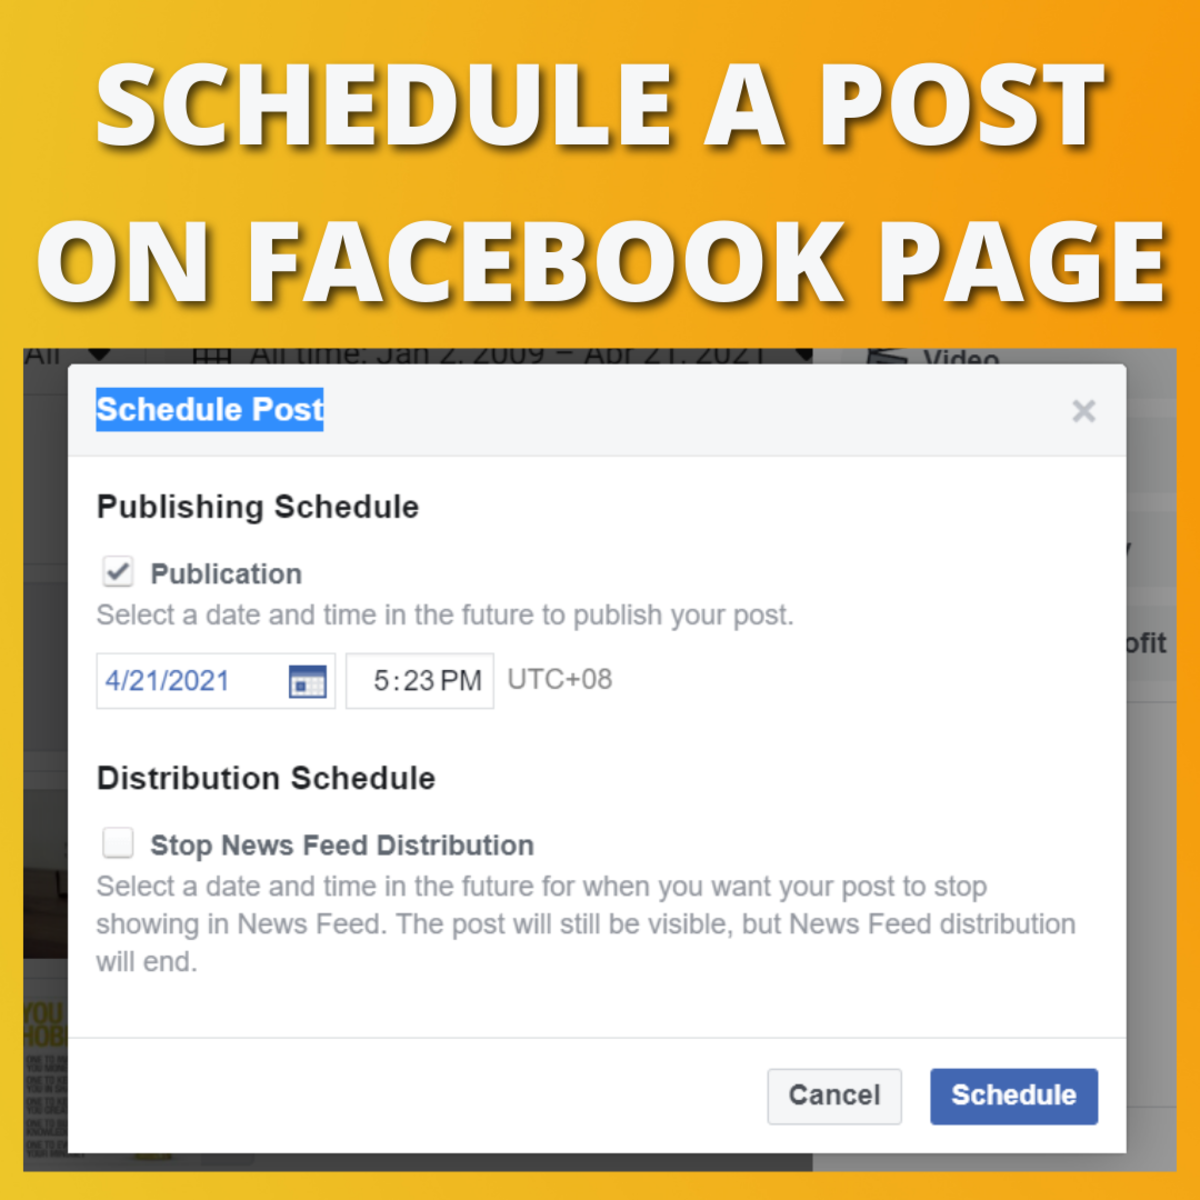 Choose the date and time you'd like to schedule your post.